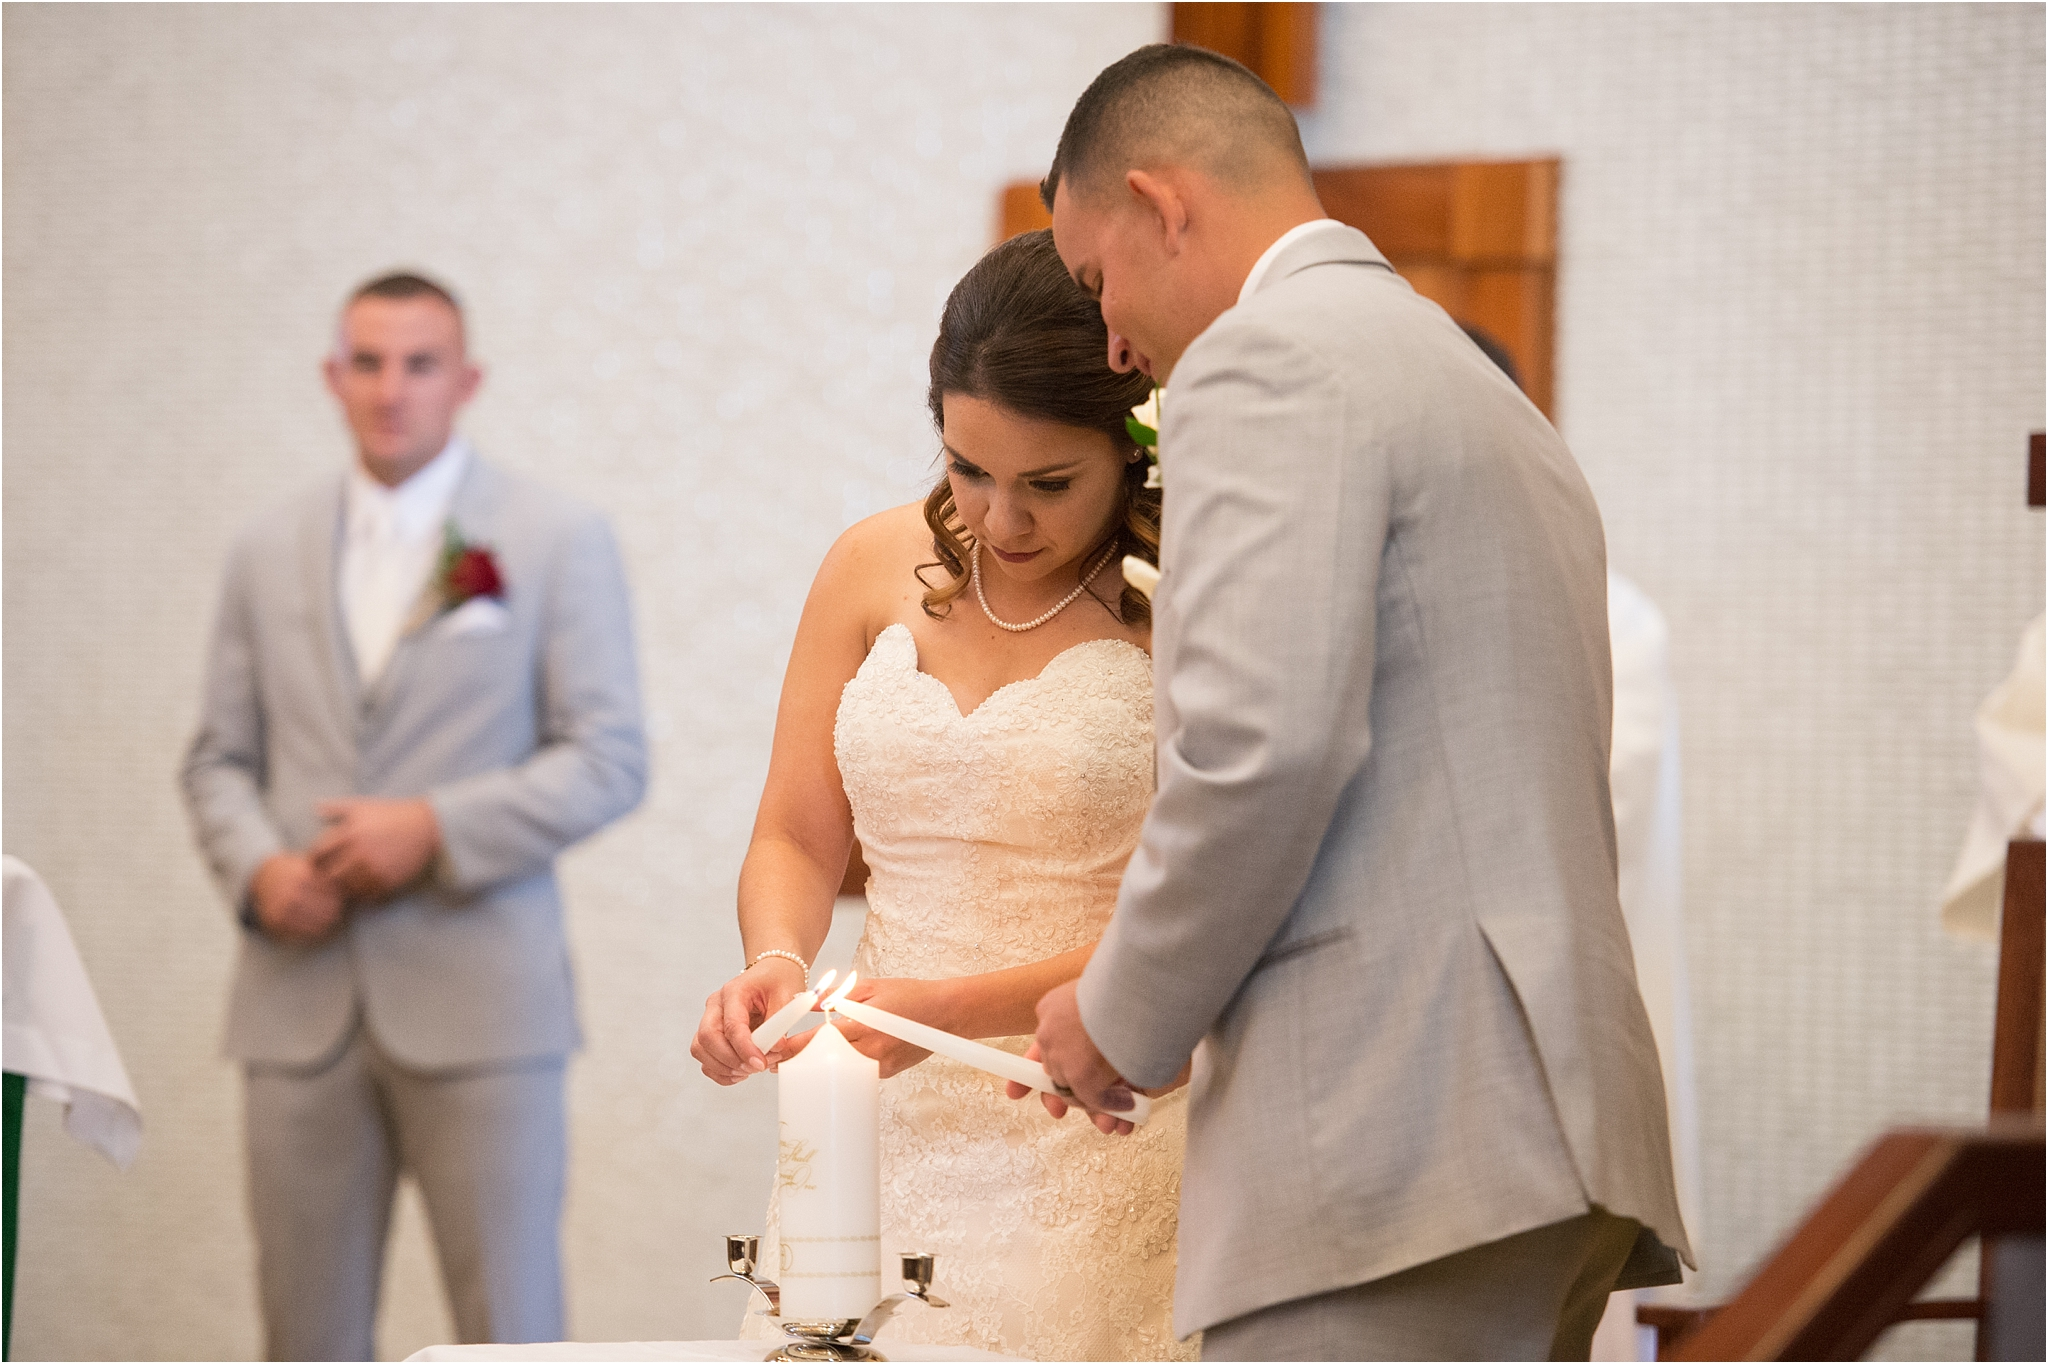 kayla kitts photography - albuquerque wedding photographer - hairpins and scissors - a cake odyssey - new mexico wedding photographer_0037.jpg